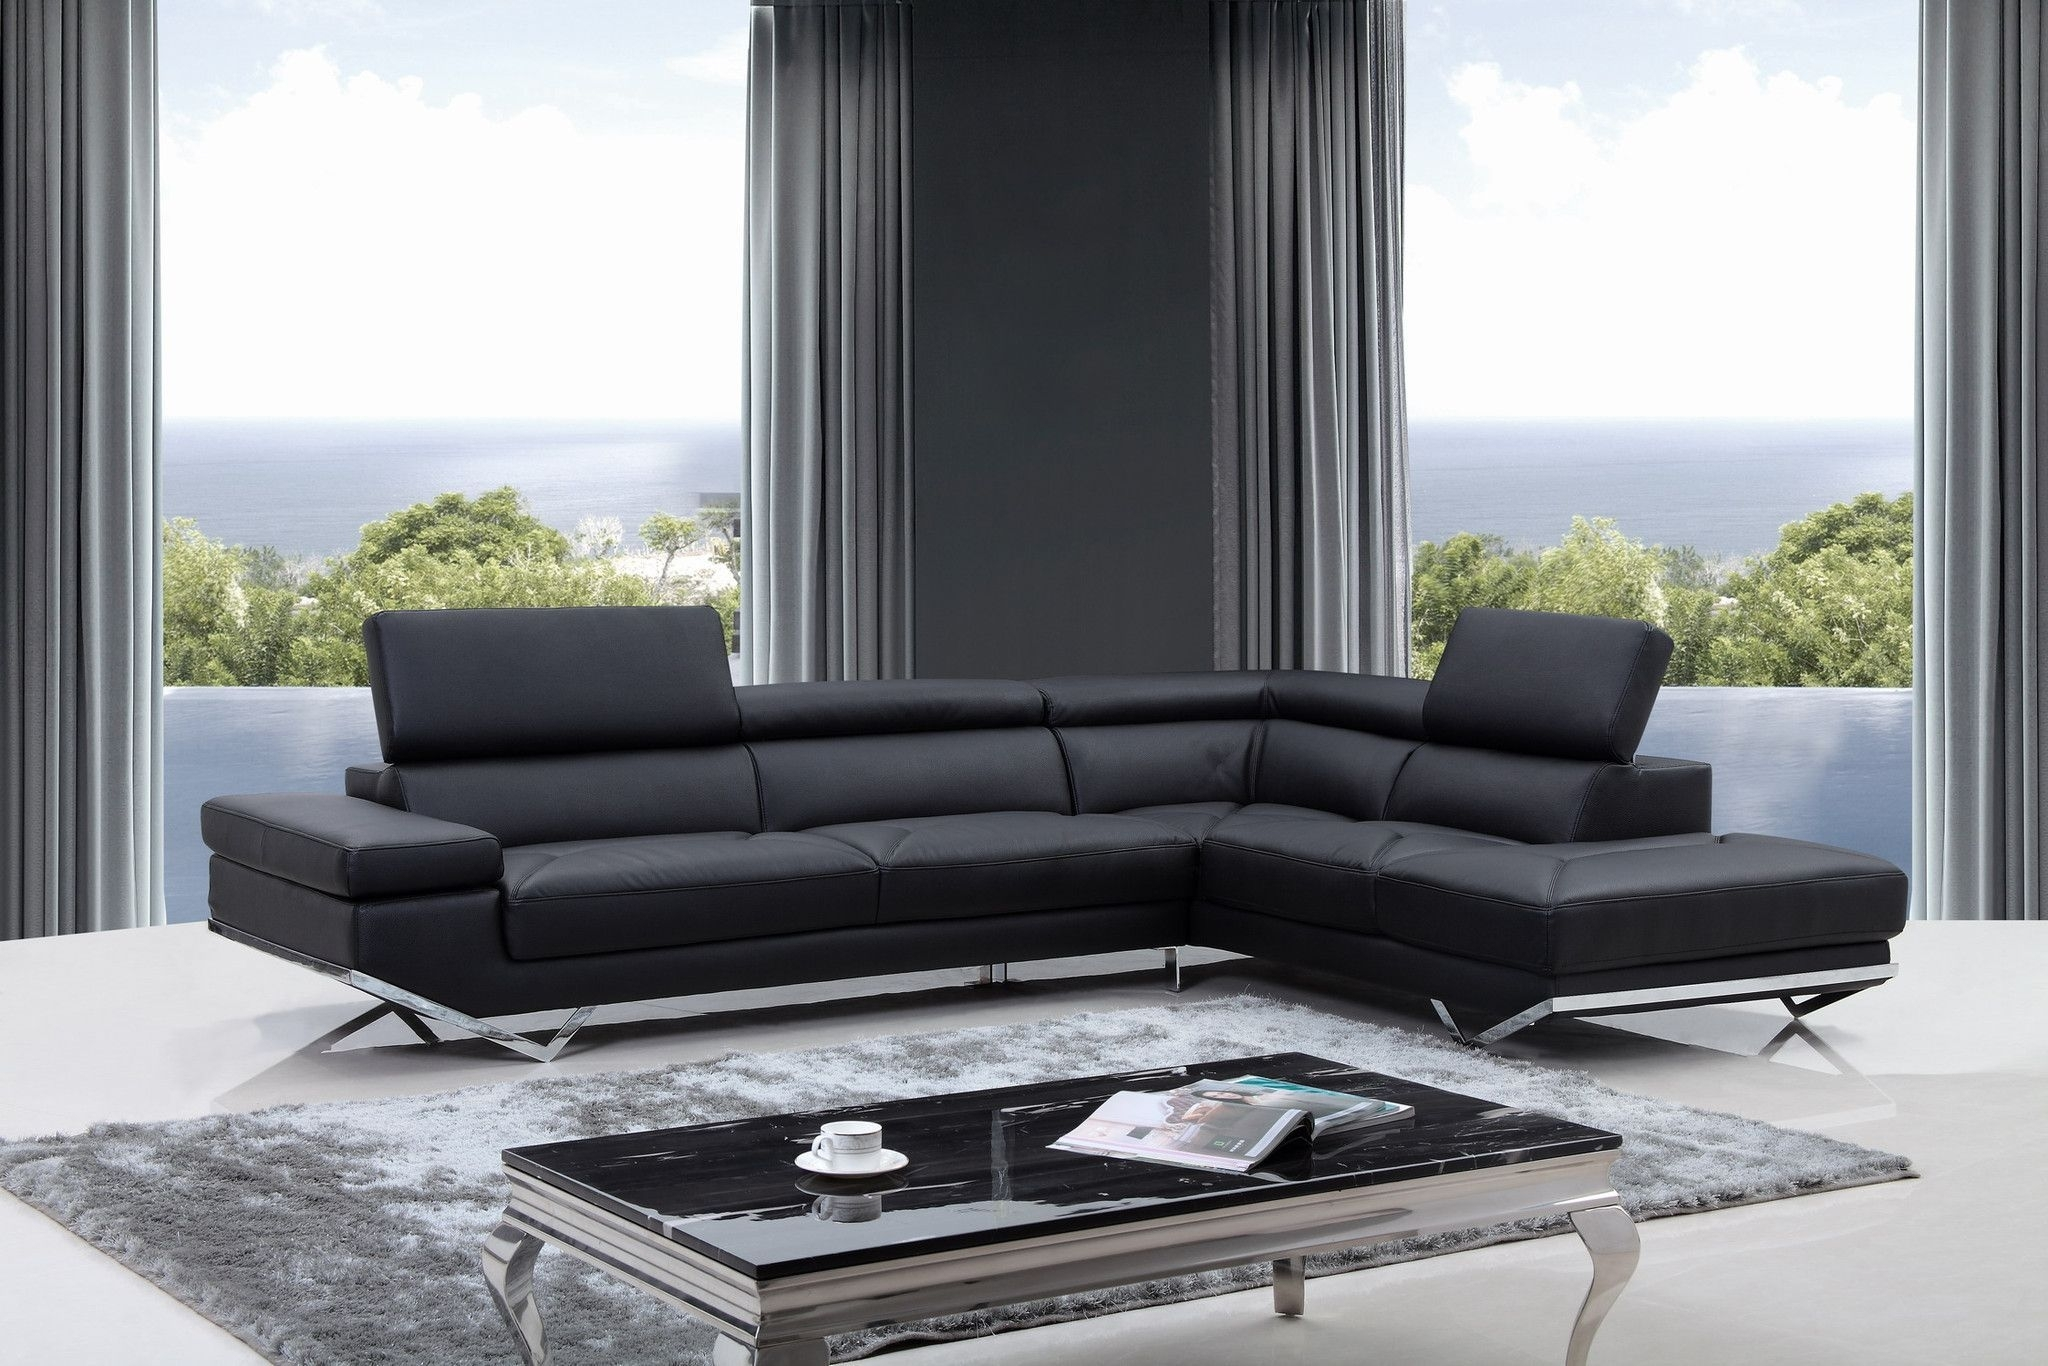 Divani Casa Quebec Modern Black Eco Leather Sectional Sofa | Media With Regard To Quebec Sectional Sofas (Image 6 of 10)